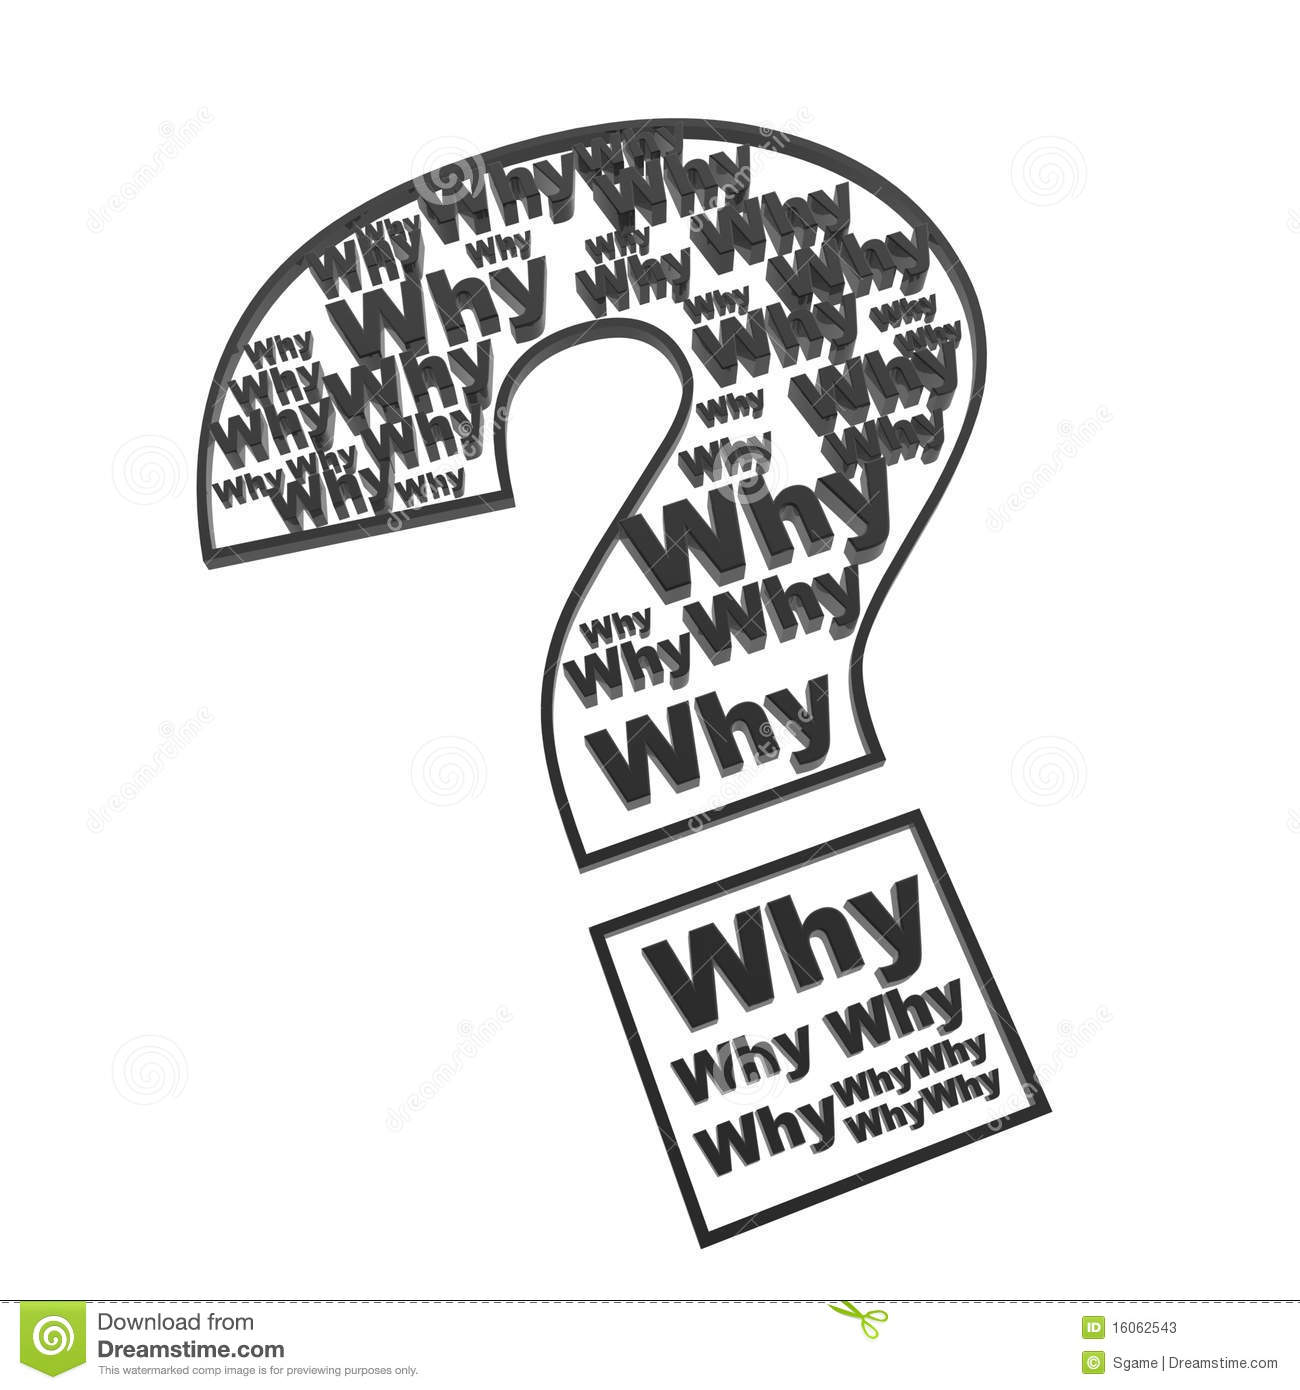 Pics photos clip art cartoon scientist with question mark stock - Ask Why In Question Mark